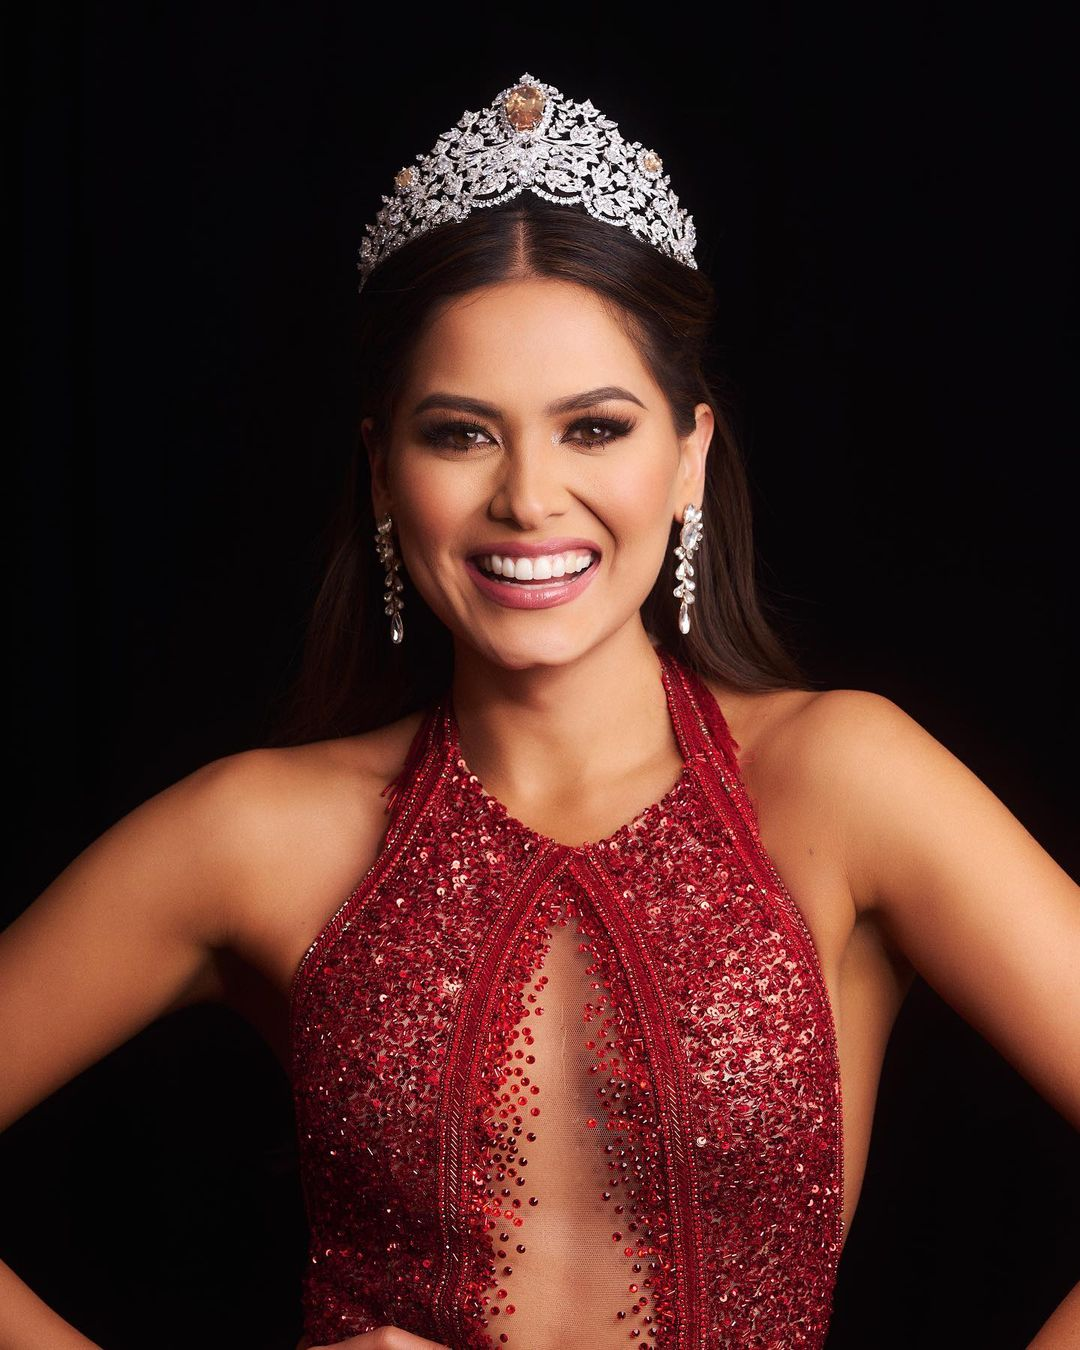 Mexico's Andrea Meza crowned 69th Miss Universe